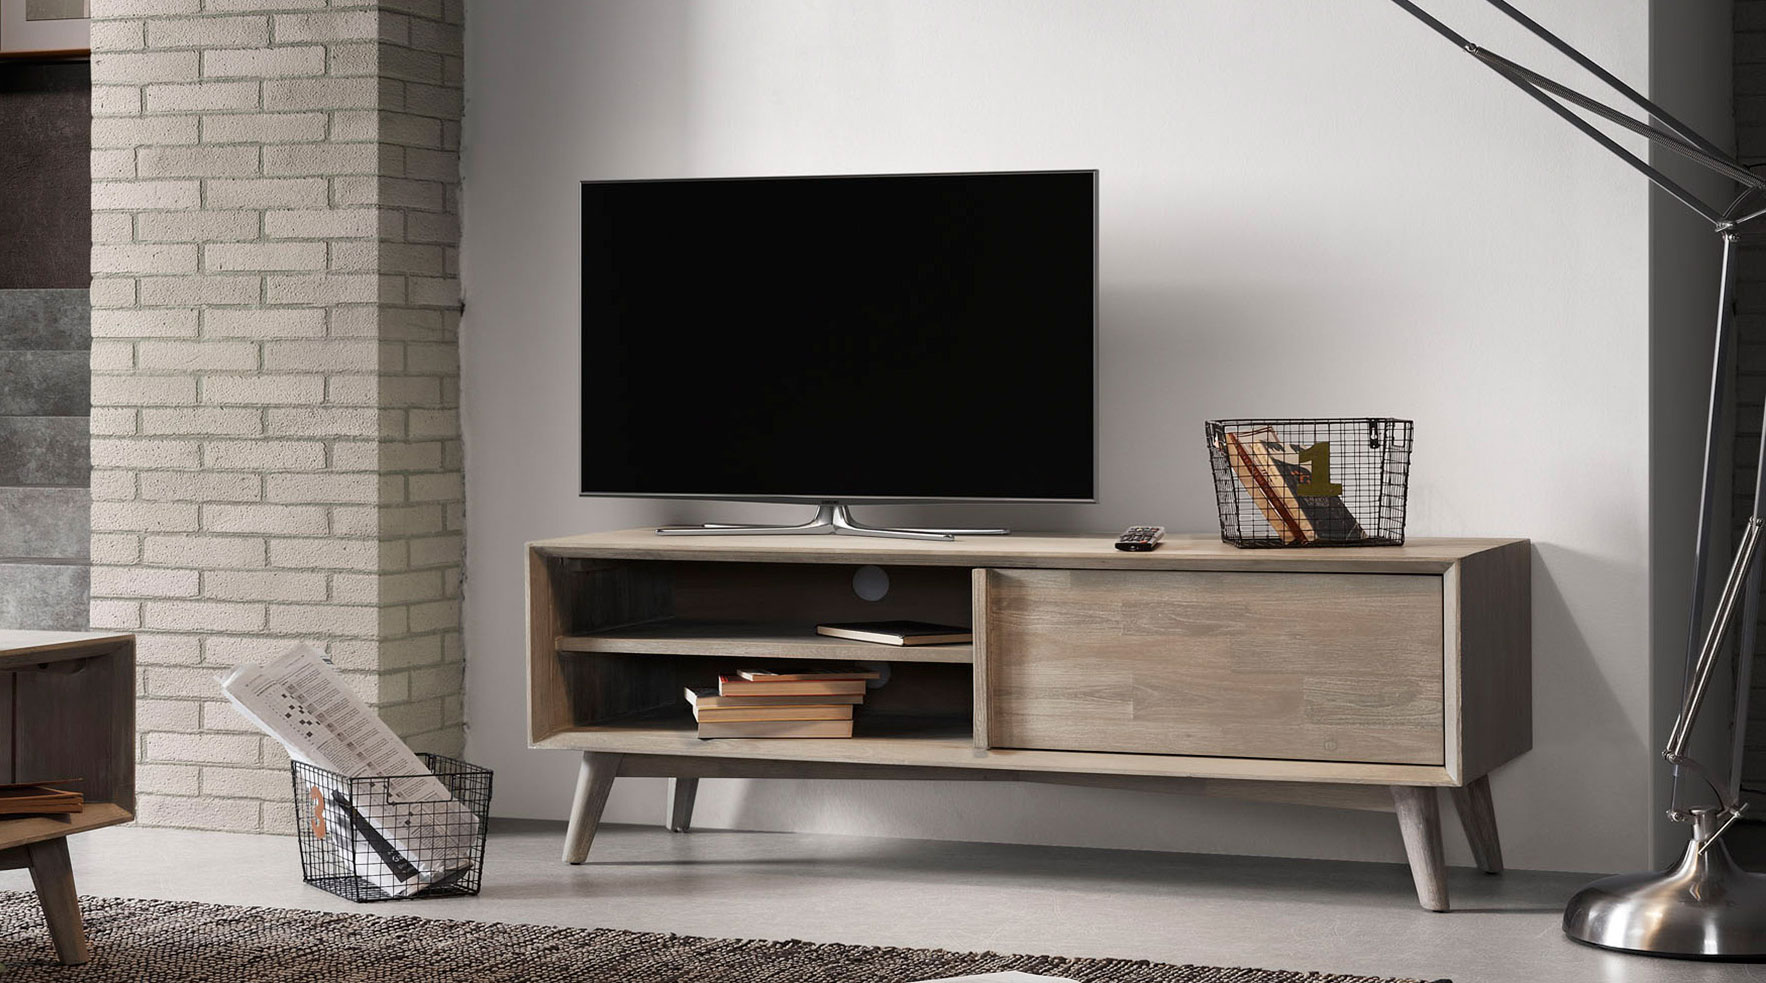 Muebles De Television Mueble Tv Madera Nórdica Derwon 2 No Disponible En